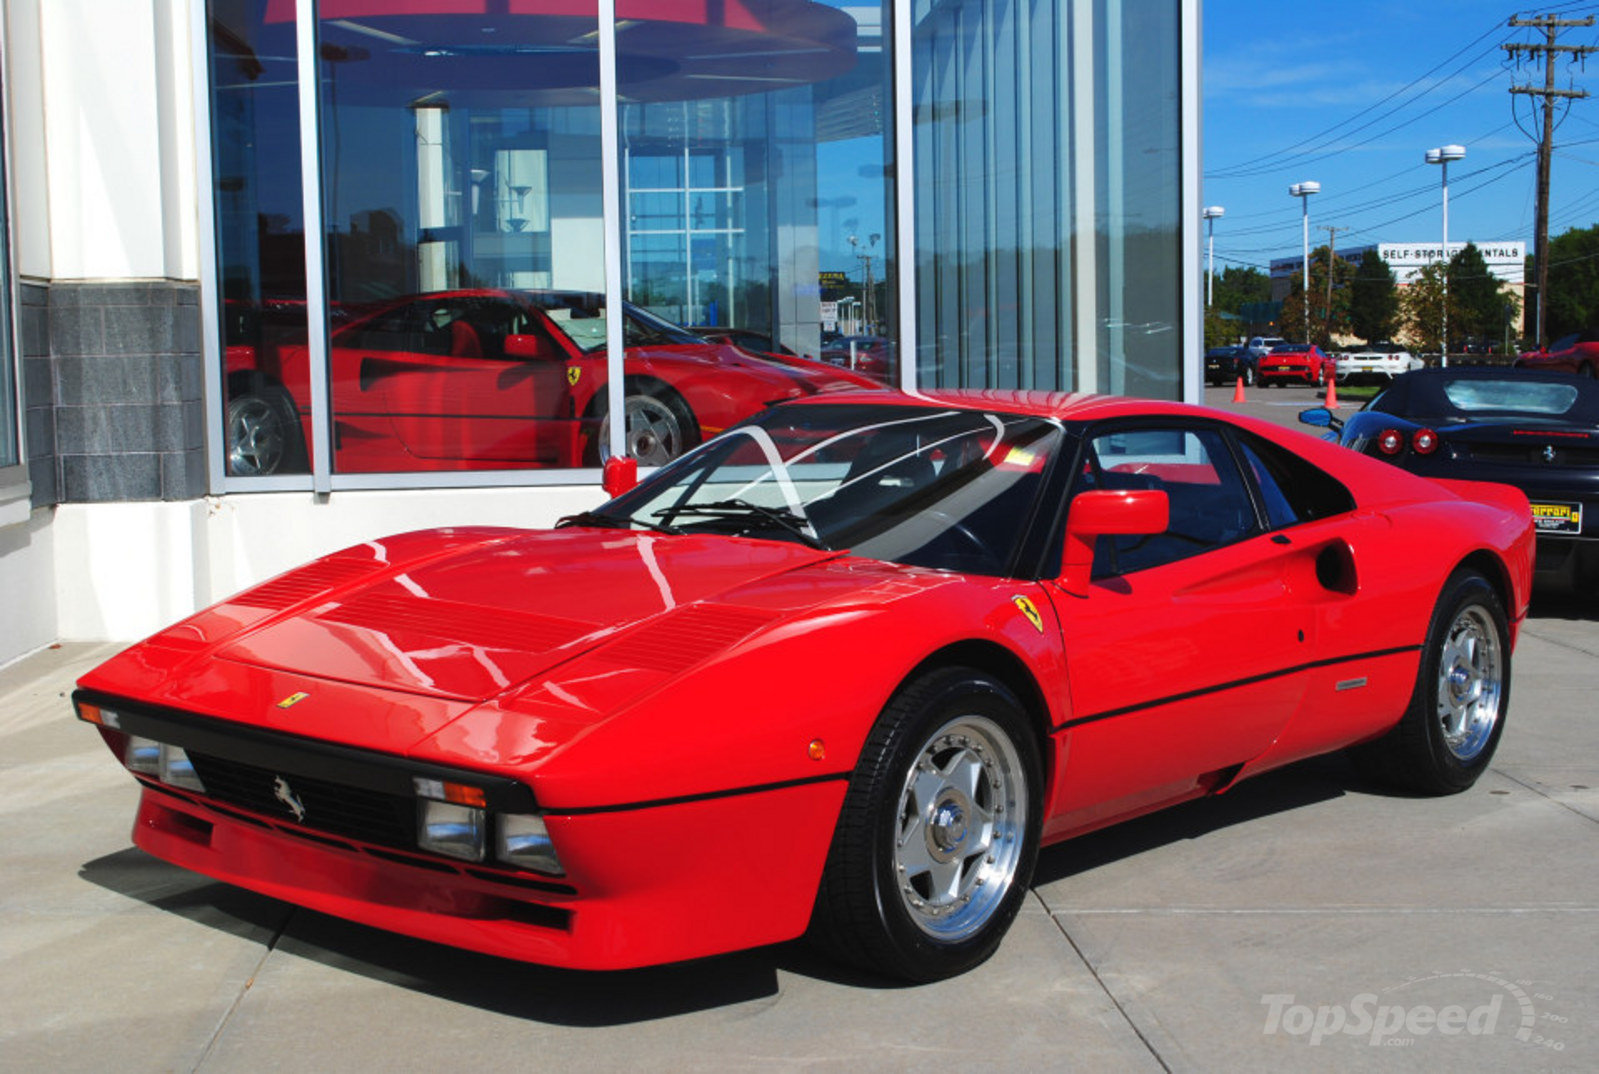 Car Brake Pads >> Pristine 1985 Ferrari 288 GTO For Nearly $2 Million News - Top Speed